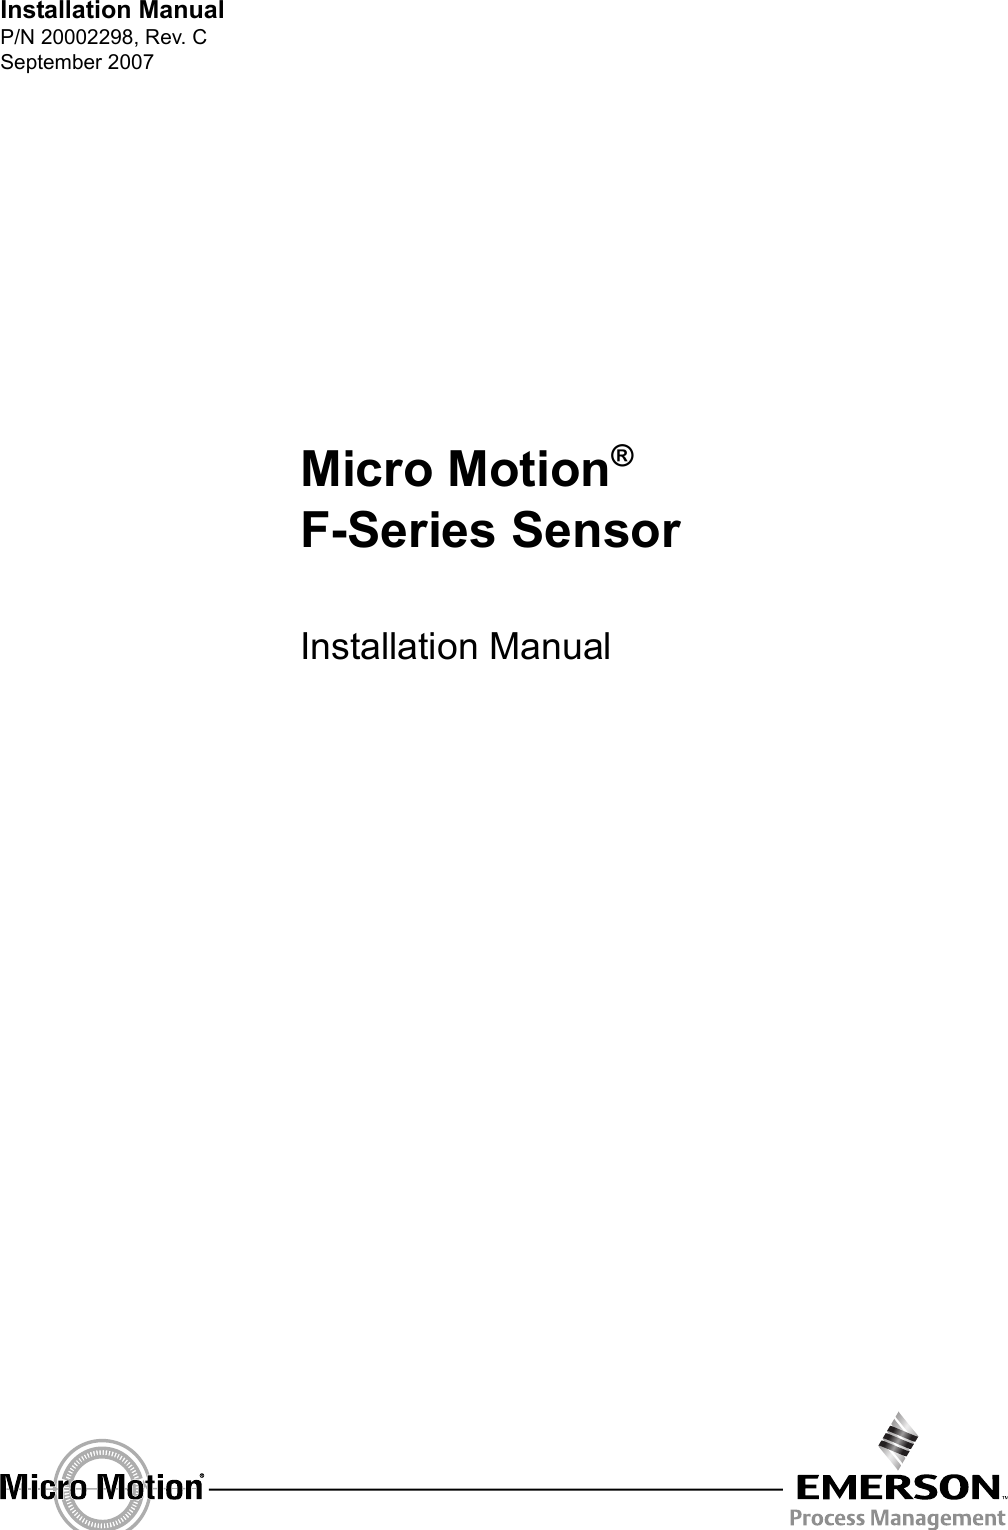 EmersonMicroMotionFSeriesSensorUsersManual165517.1340227031 User Guide Page 1 emerson coriolis meter manual